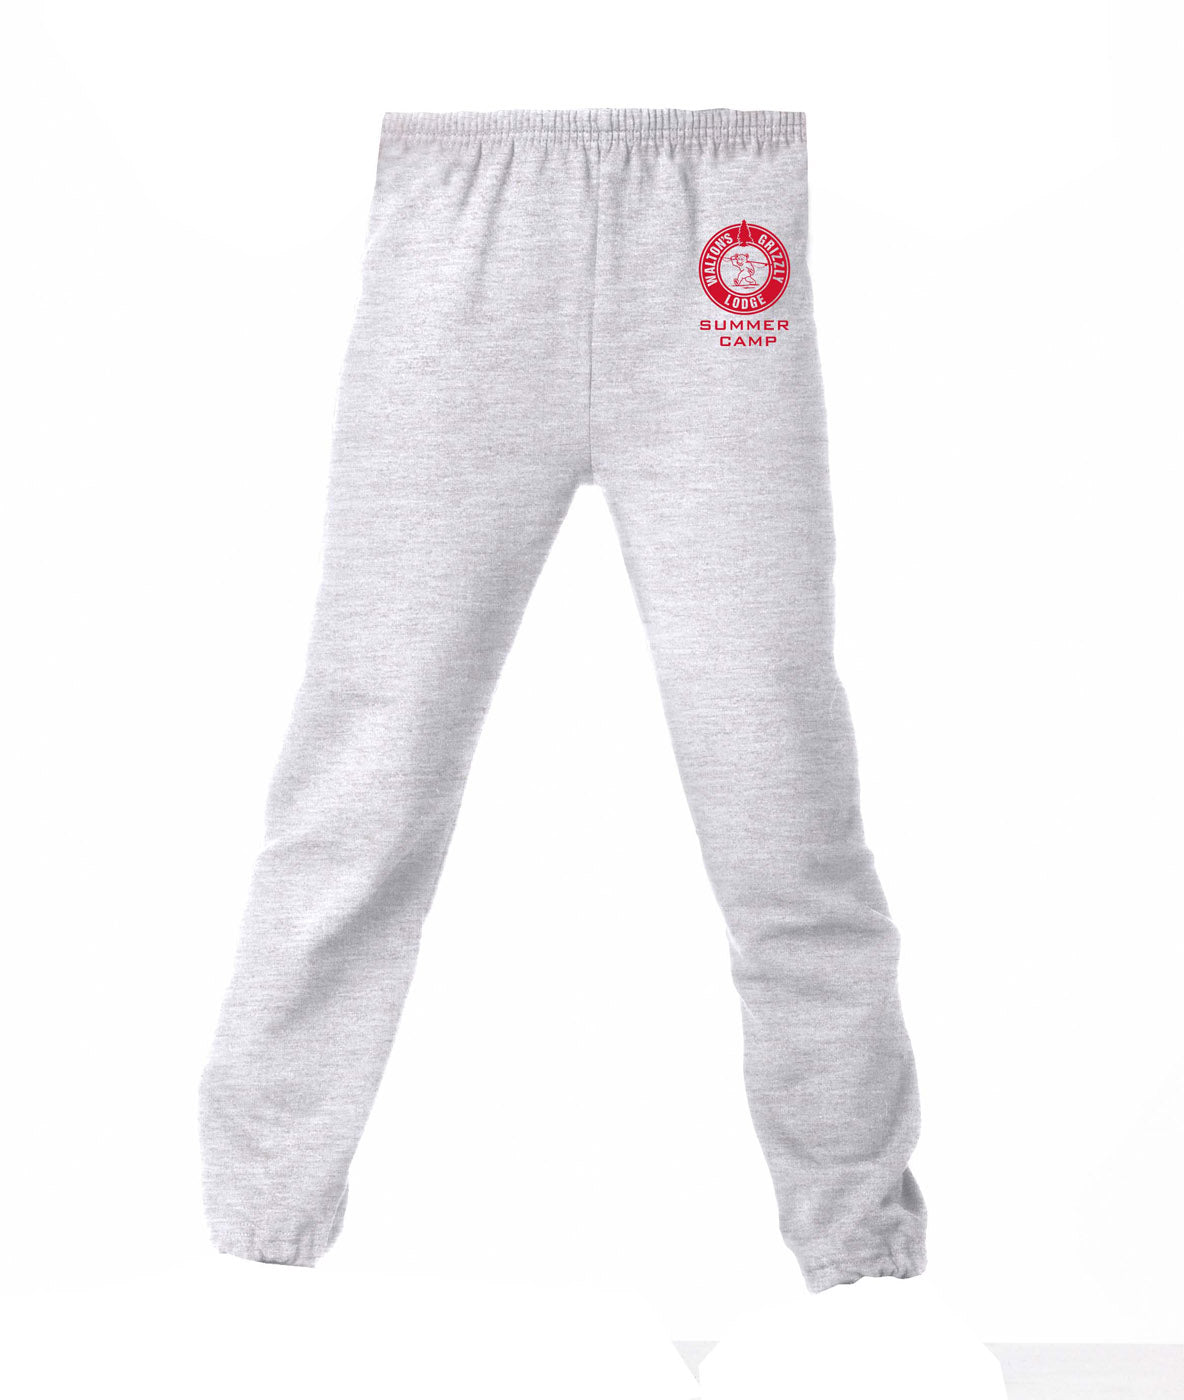 Walton's Grizzly Lodge Cinch Bottom Sweatpants